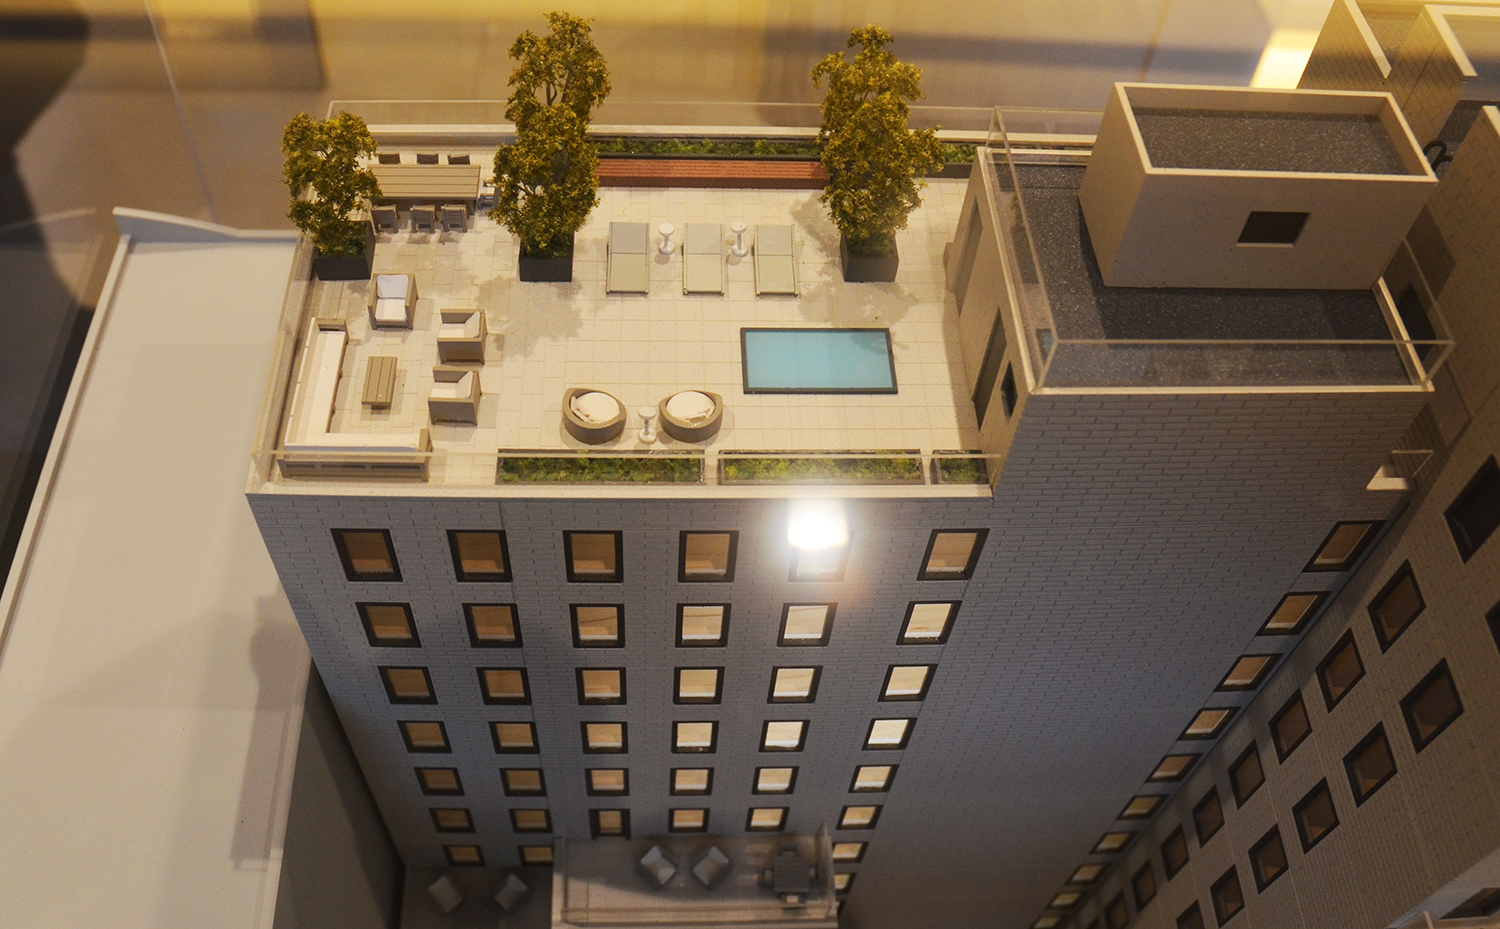 Sales gallery model showing the 19th floor outdoor space at 55 West 17th Street